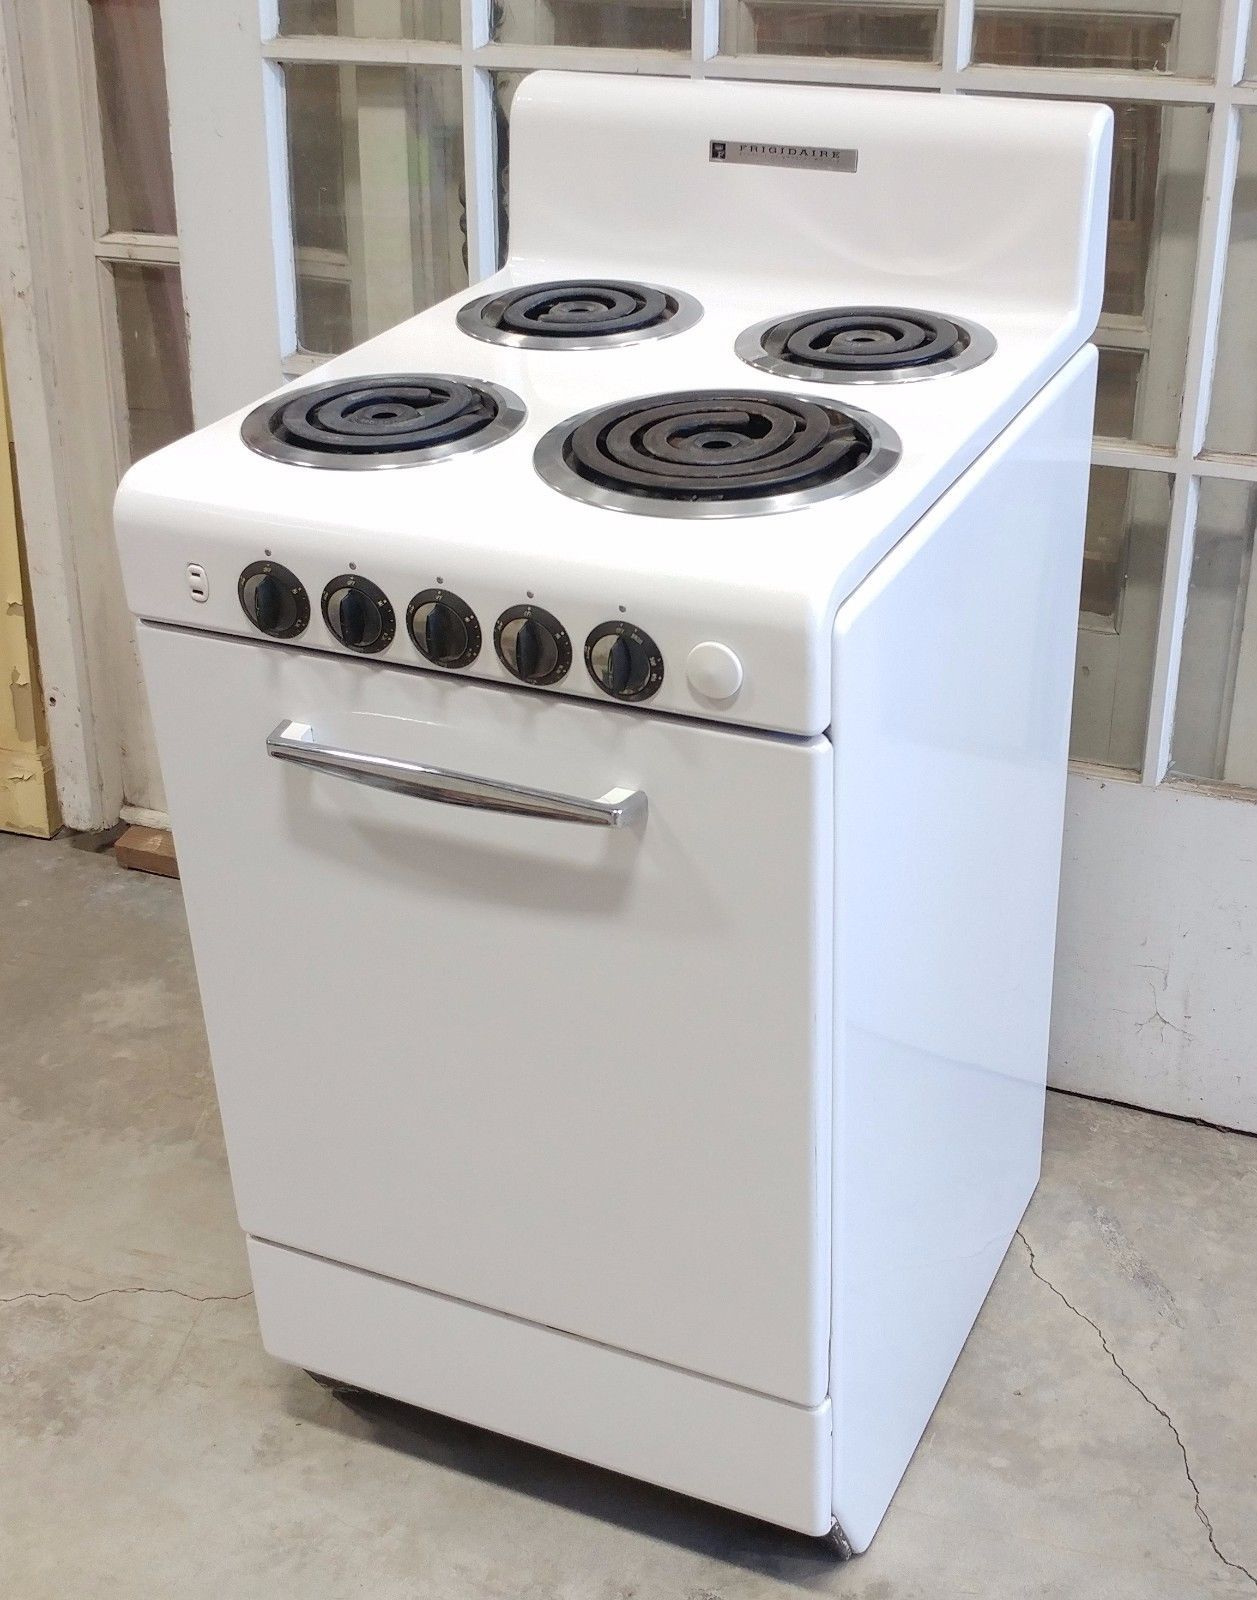 us  399 00 used in collectibles kitchen  u0026 home large appliances vintage frigidaire electric stove oven range broiler   complete      rh   pinterest com